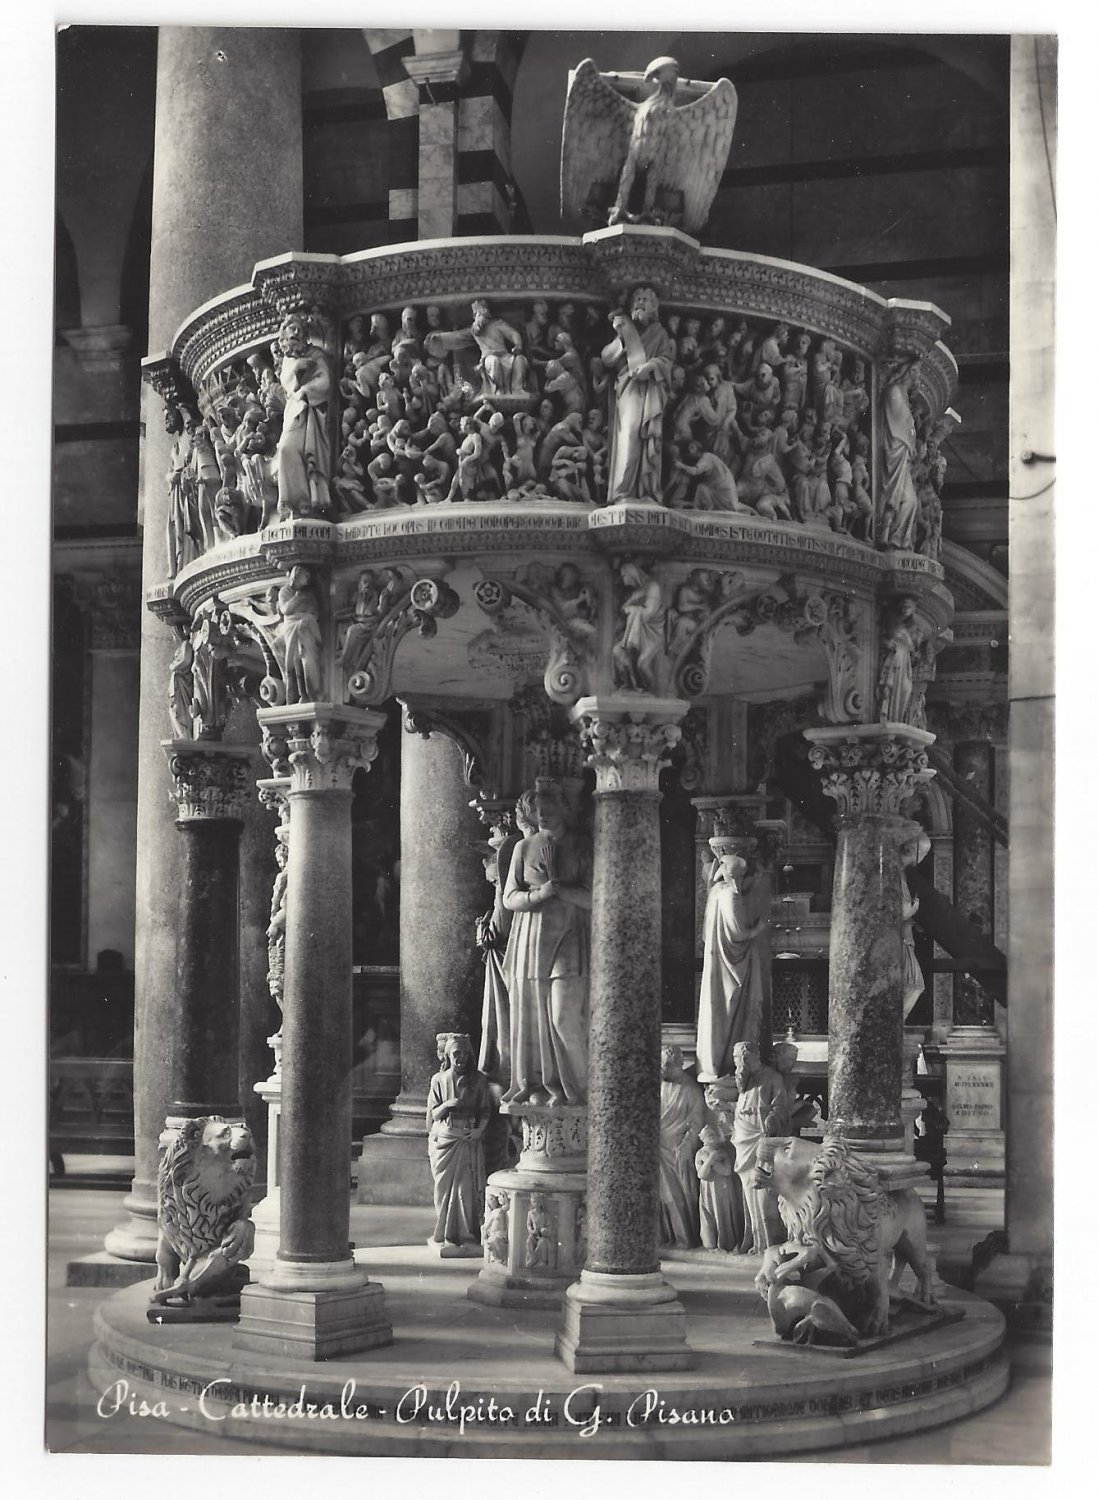 RP Italy Pisa Cathedral Pulpit G. Pisano Real Photo Art Post Card